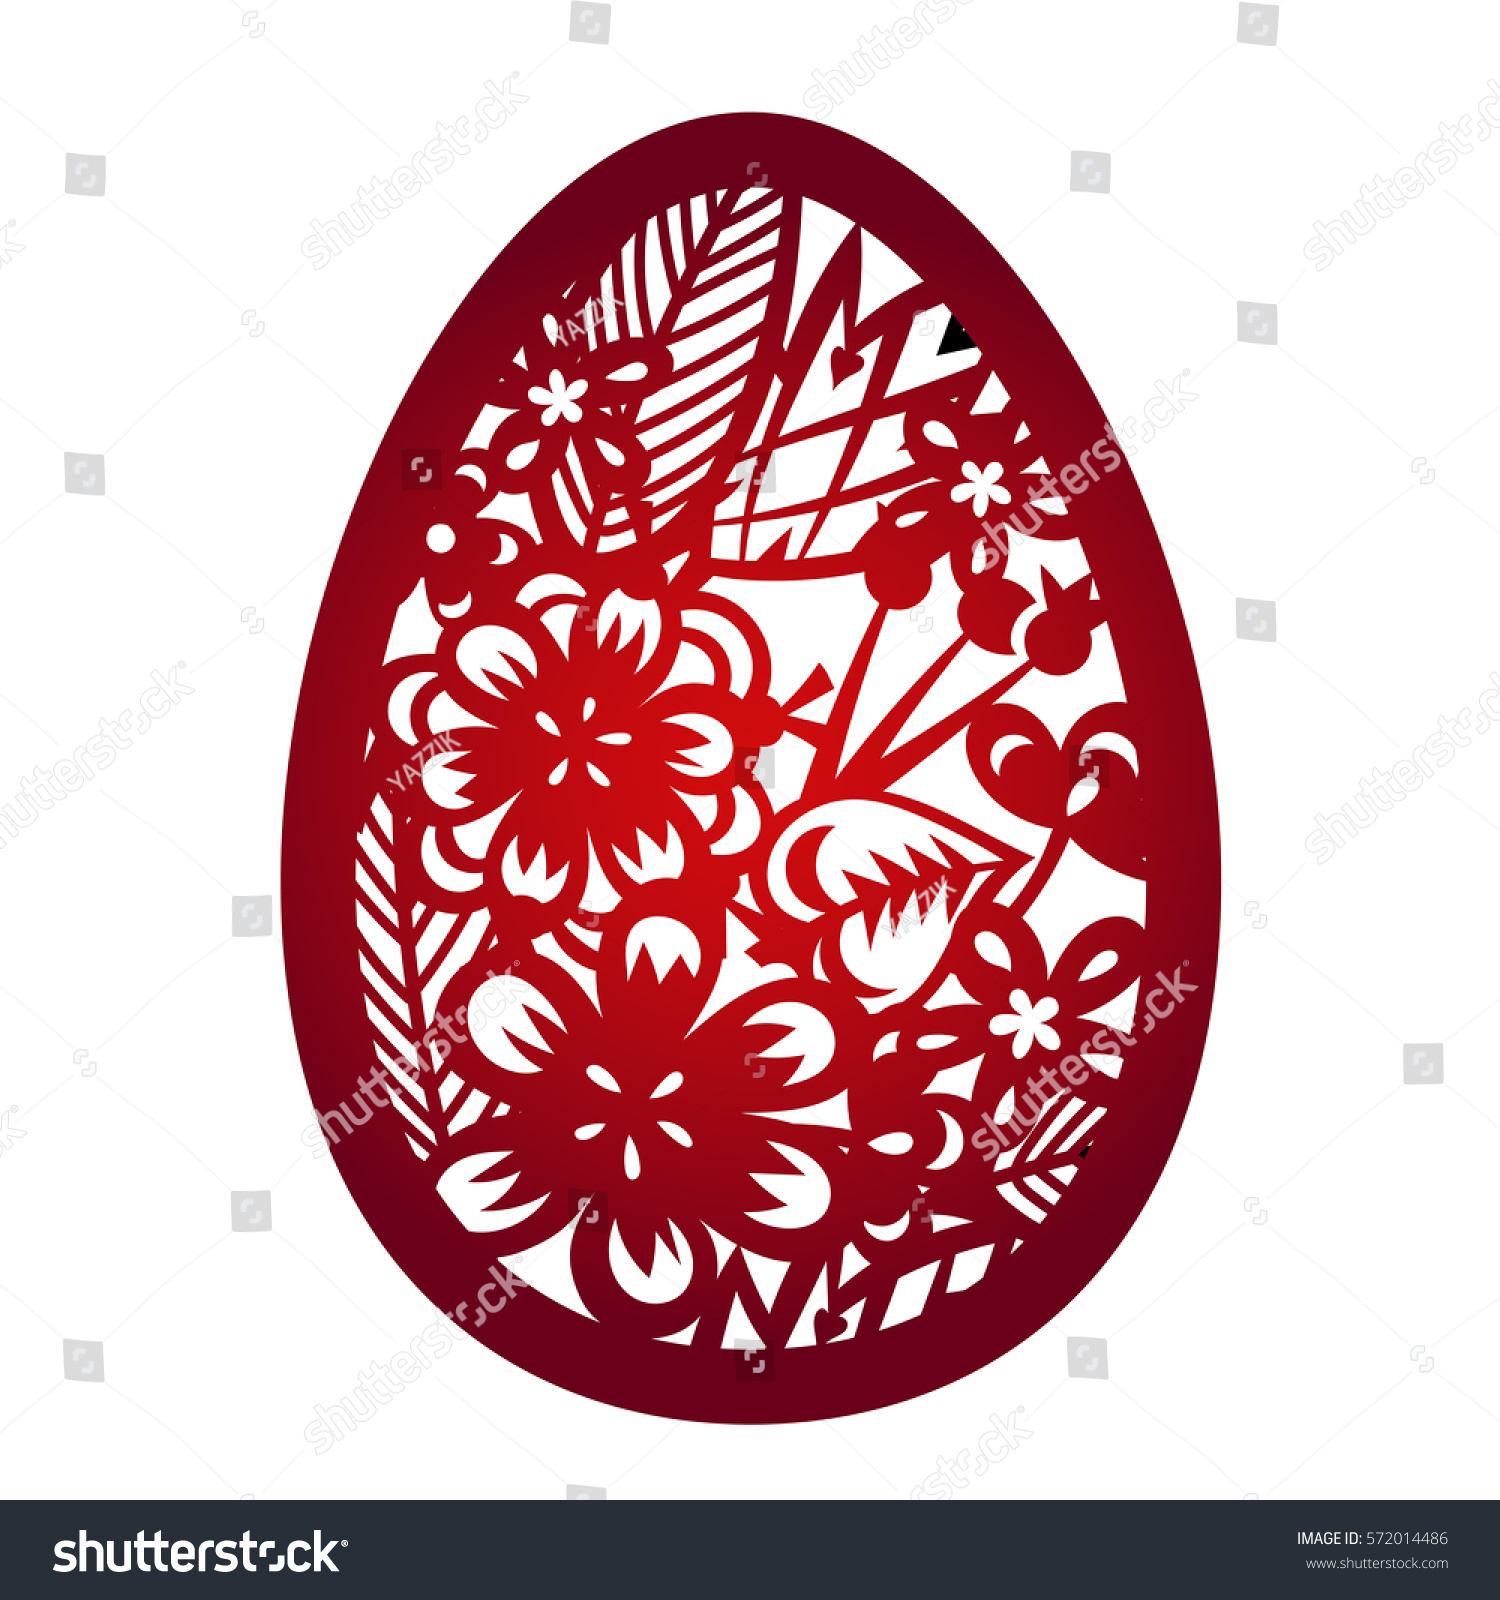 Laser Cutting Flower Pattern Decorative Easter Stock Vector ...